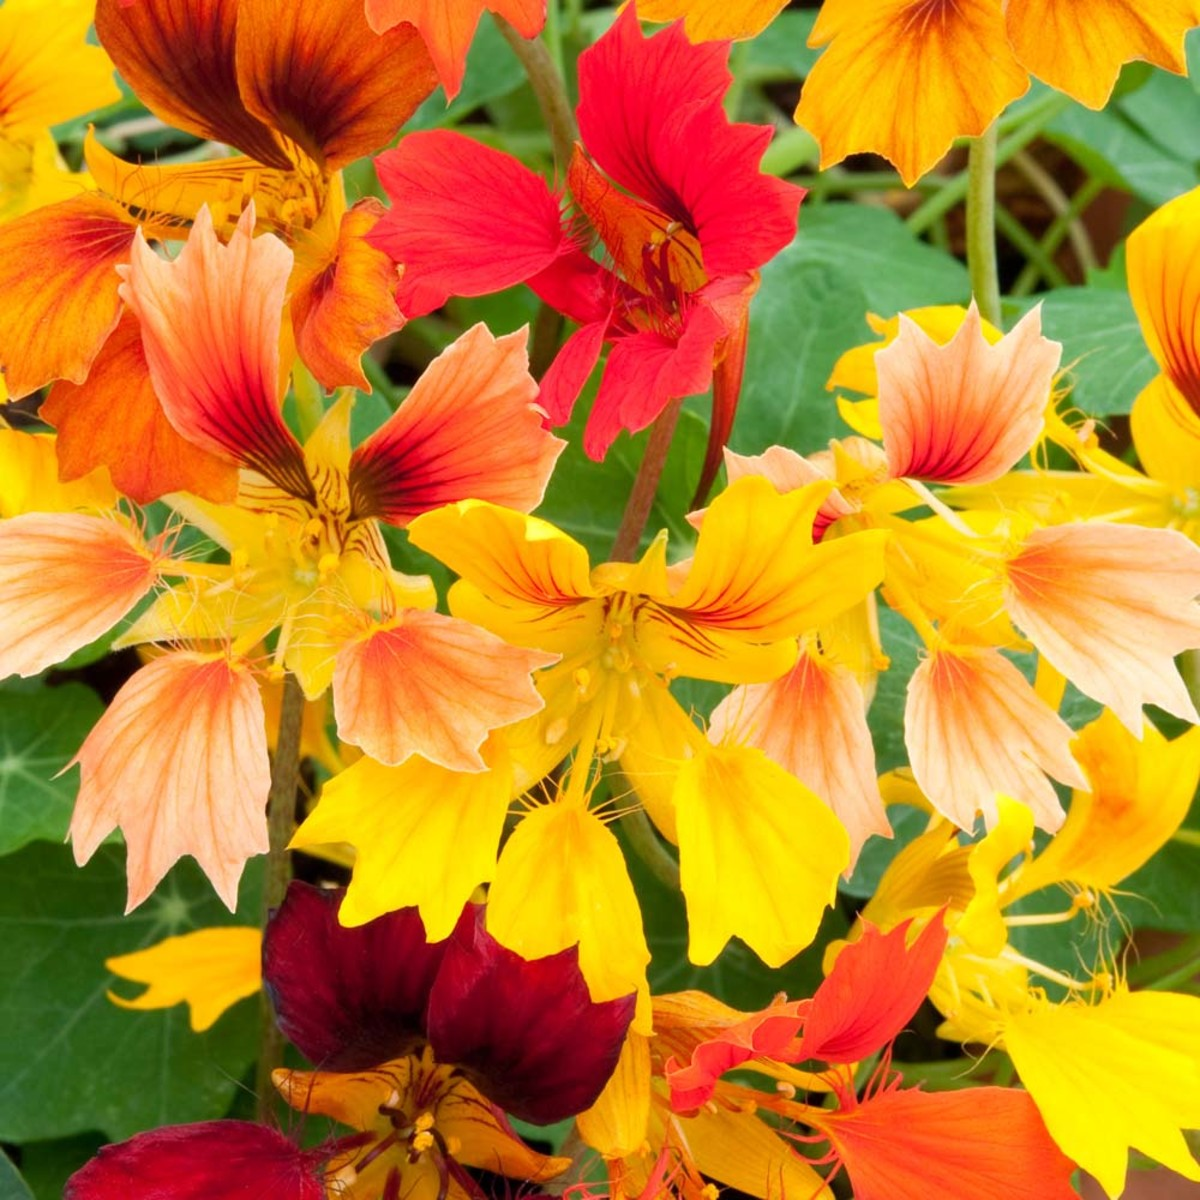 Nasturtium 'Flame Thrower'